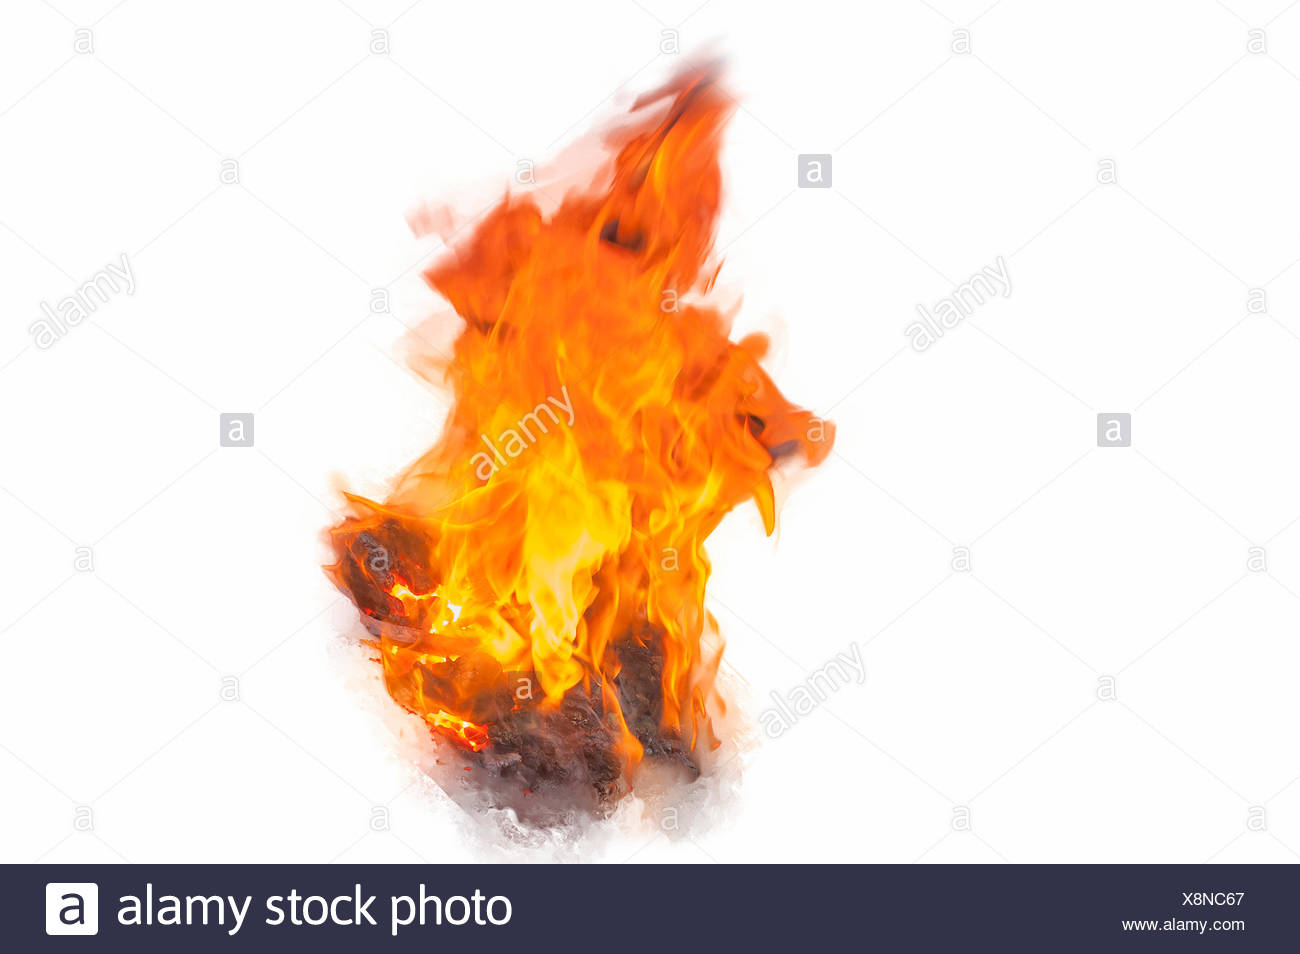 Bavaria,Upper Bavaria,Germany,craft,hand,smiths,fire,concepts,flame, - Stock Image